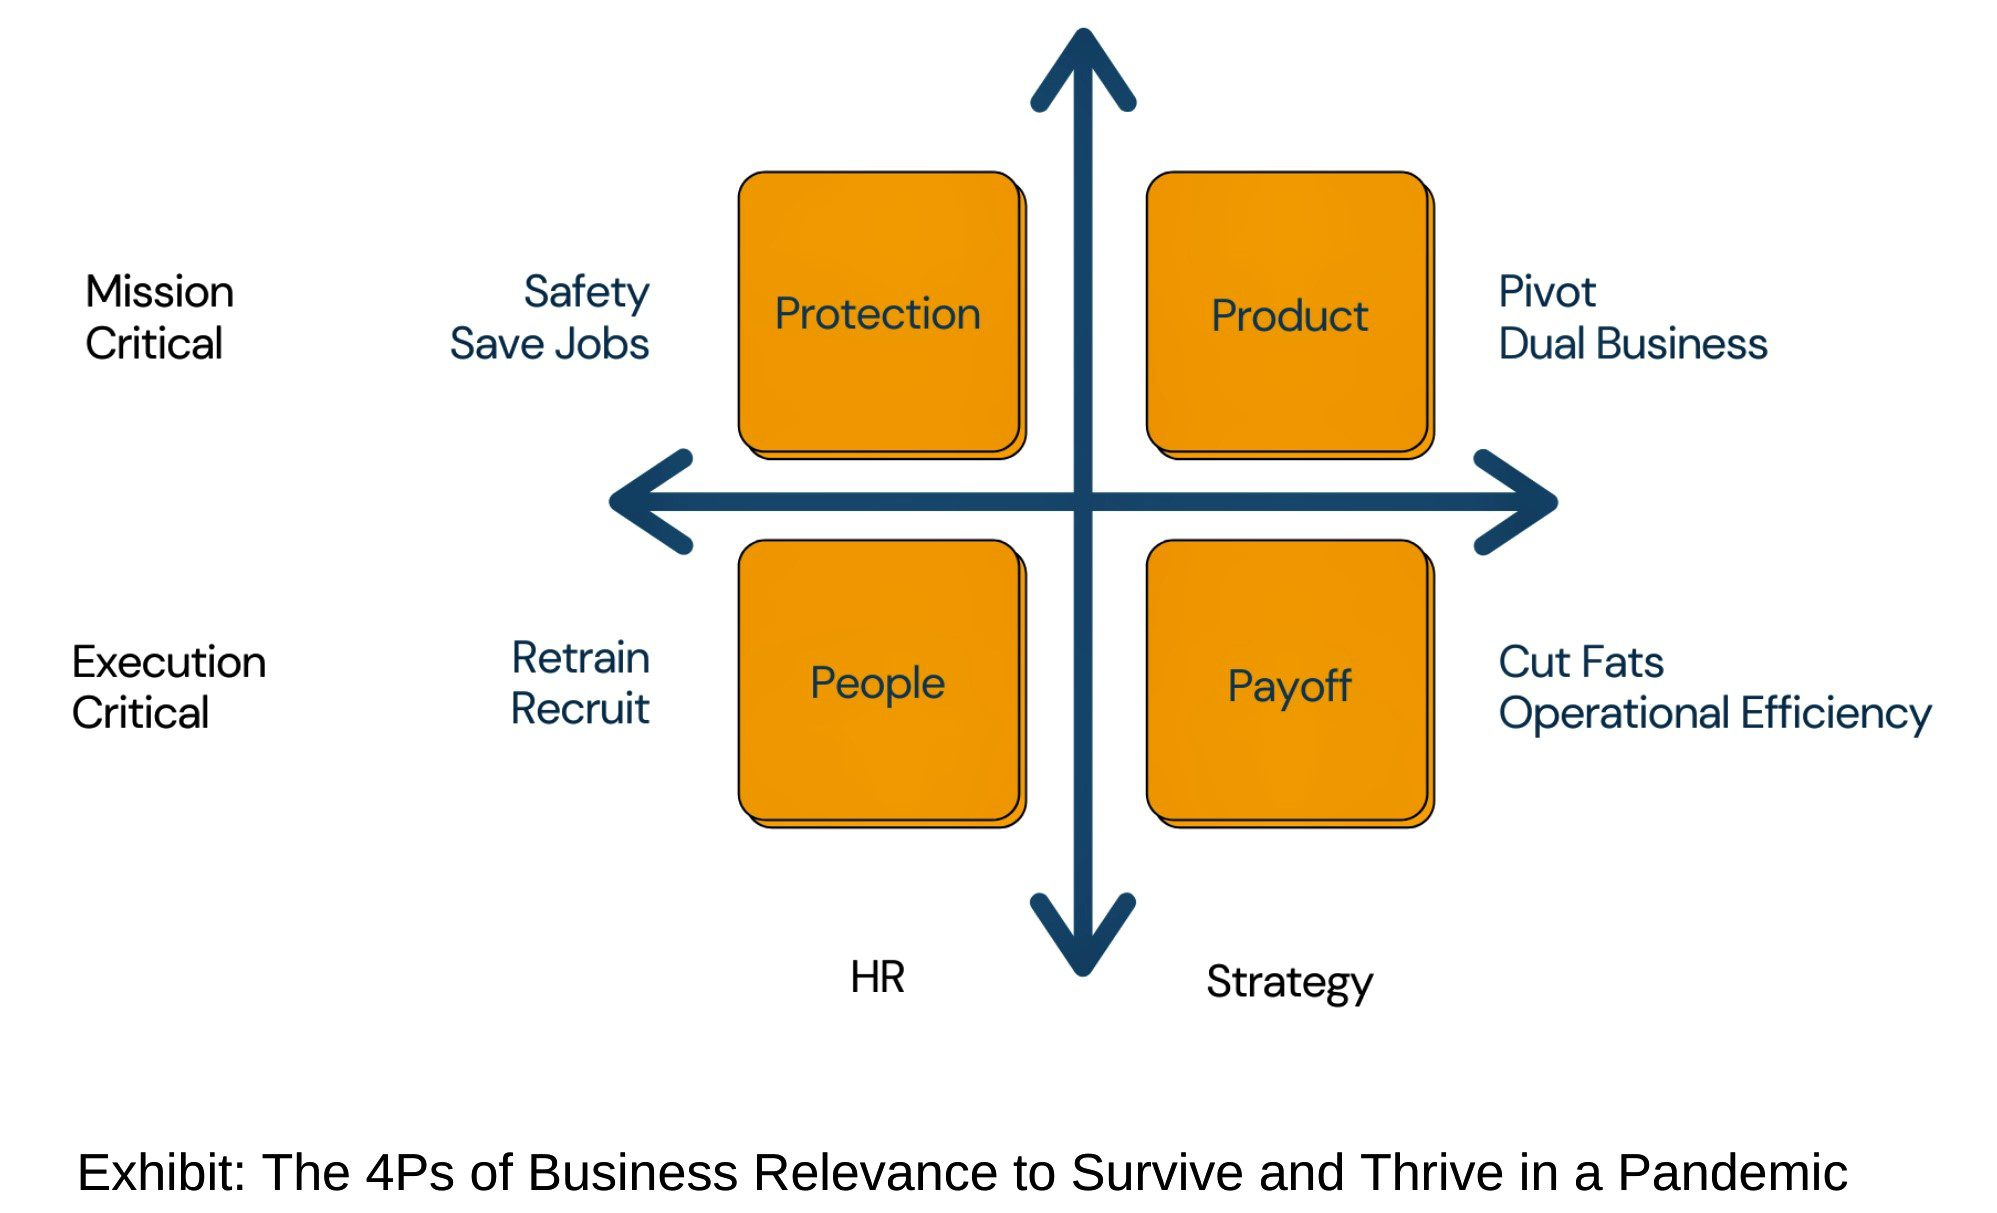 The 4 Ps of Business Relevance to Survive and Thrive During a Pandemic